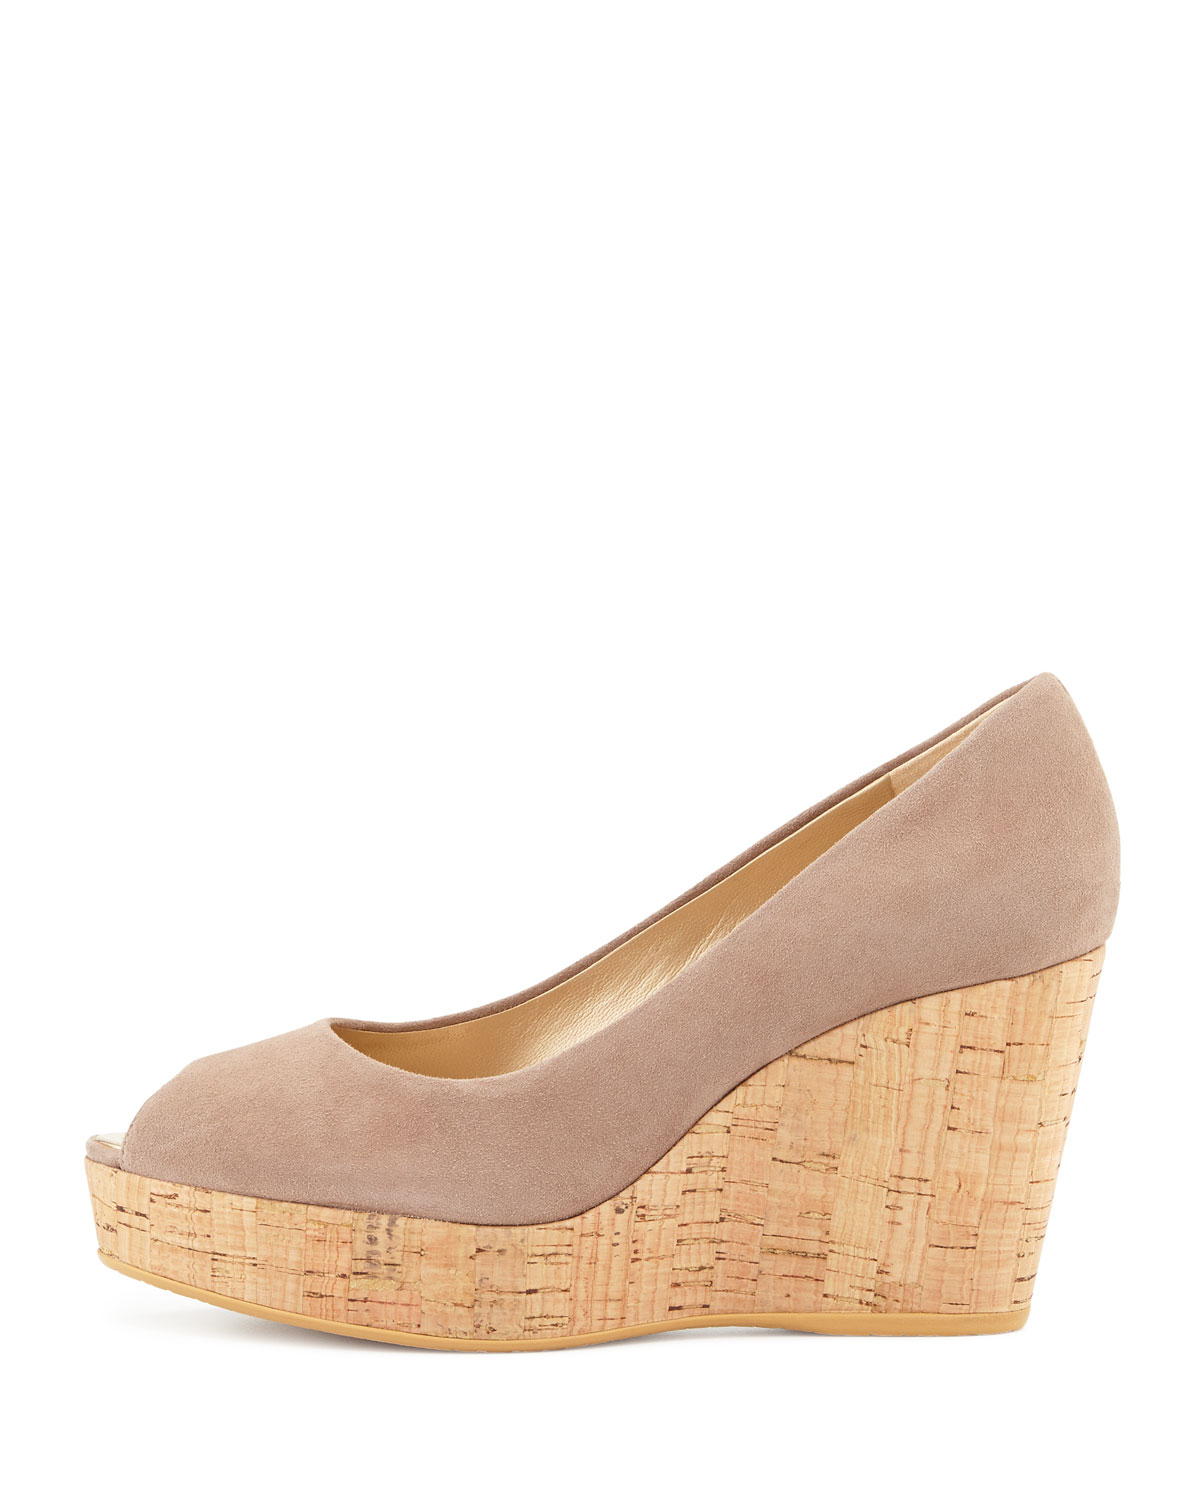 prices sale online free shipping extremely Stuart Weitzman Cap-Toe Wedge Pumps buy cheap lowest price 100% authentic for sale clearance exclusive Vy37x